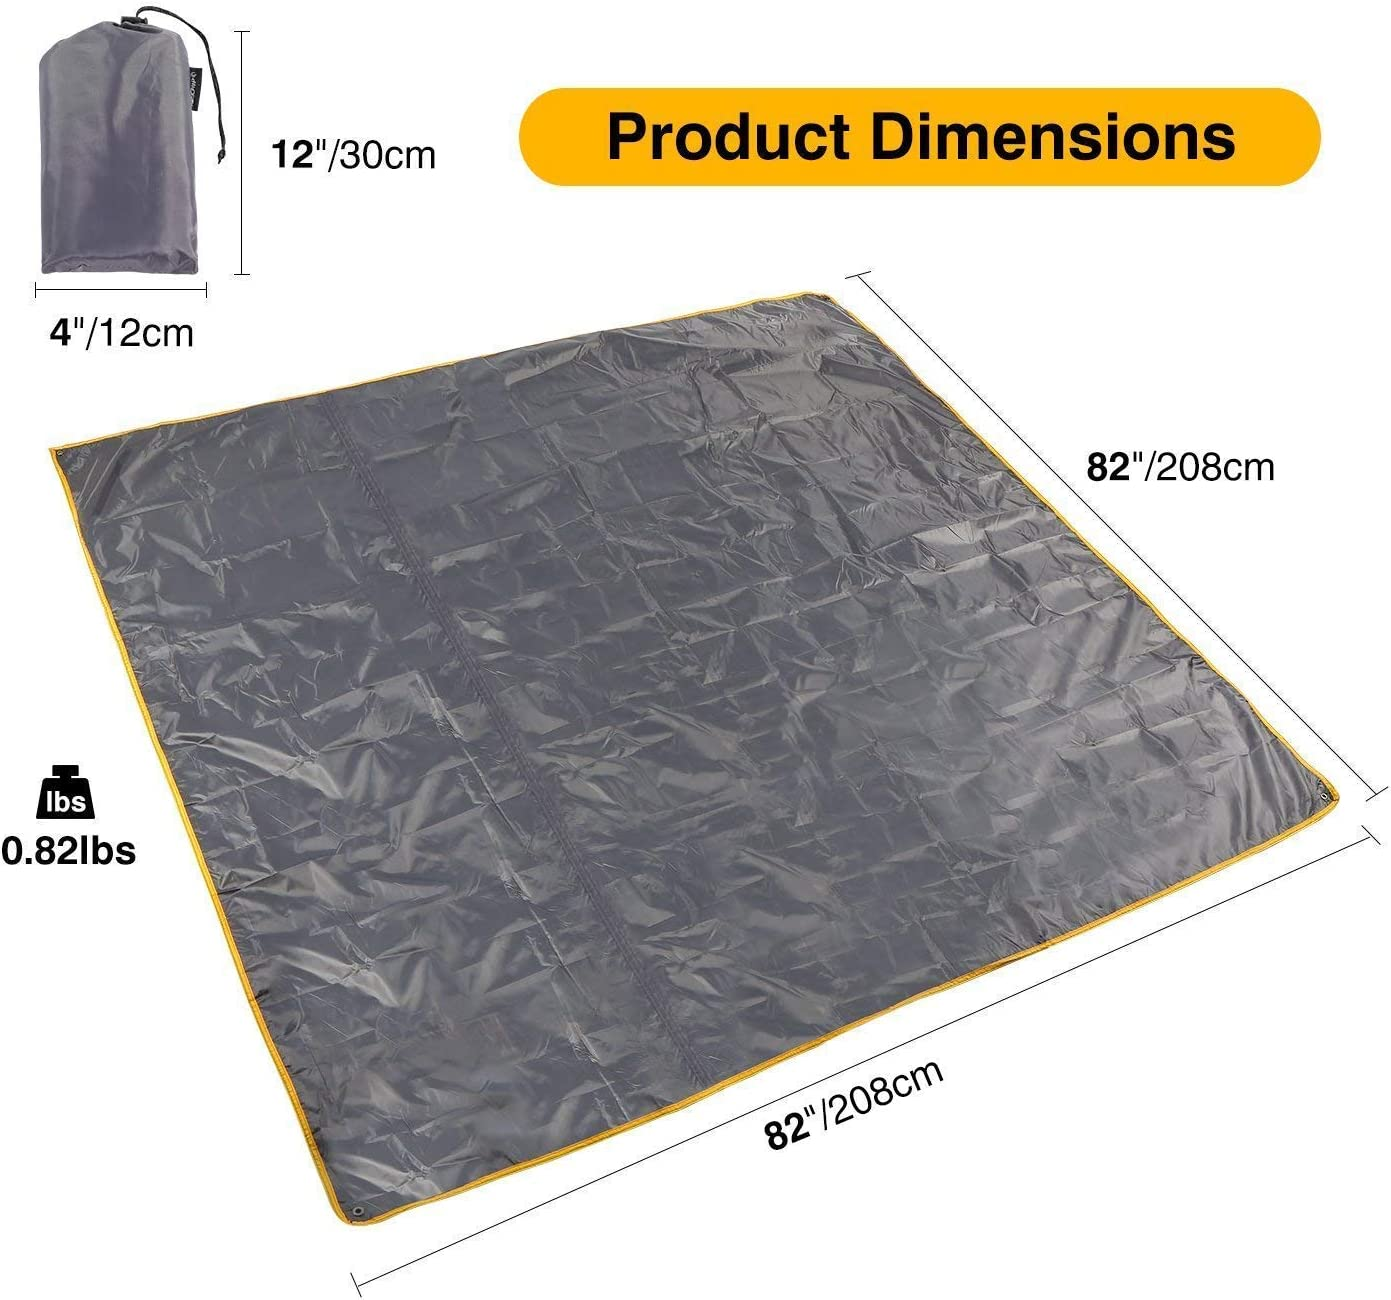 Lightweight Compact REDCAMP Waterproof Camping Tent Tarp 90//140//180//210//240//270//300cm 4 in 1 Tent Footprint Multifunctional for Camping Hiking Survival Tarp